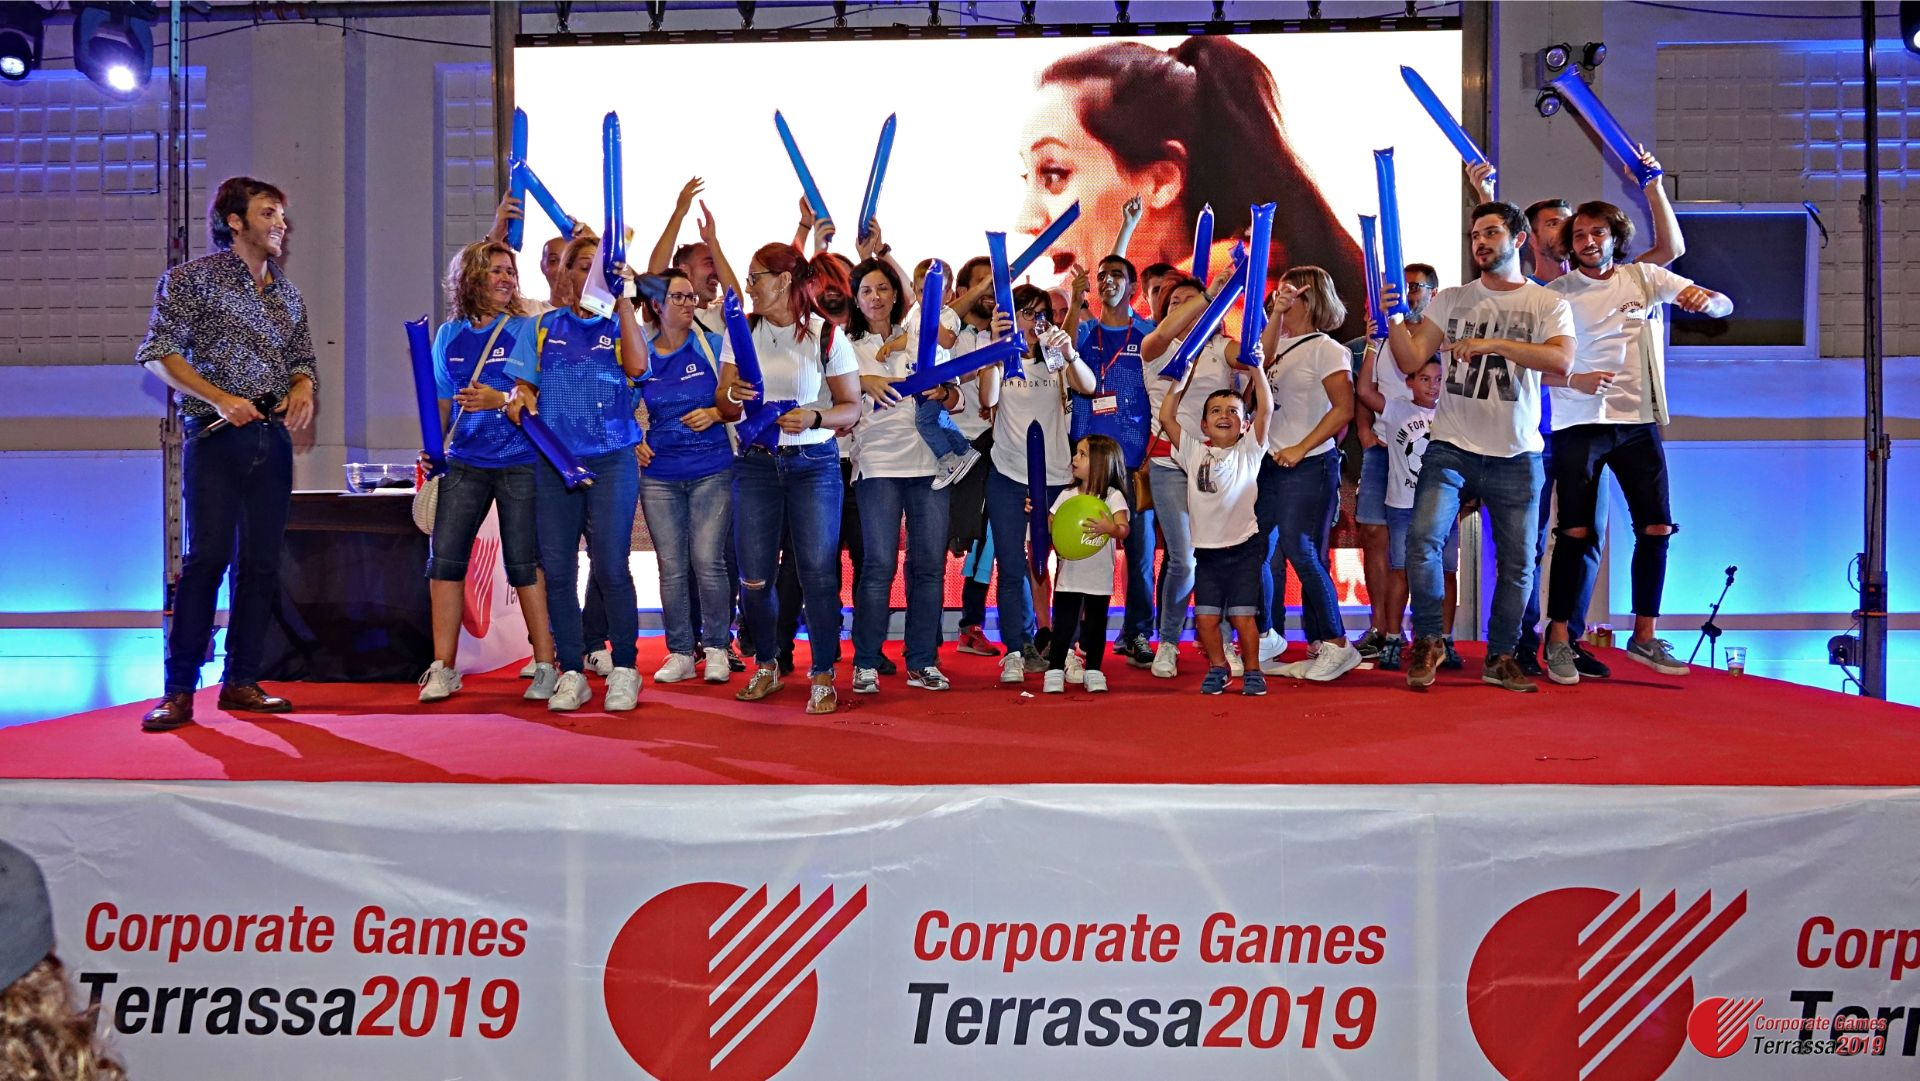 CORPORATE GAMES TERRASSA 2019-FAIRPALY-00873